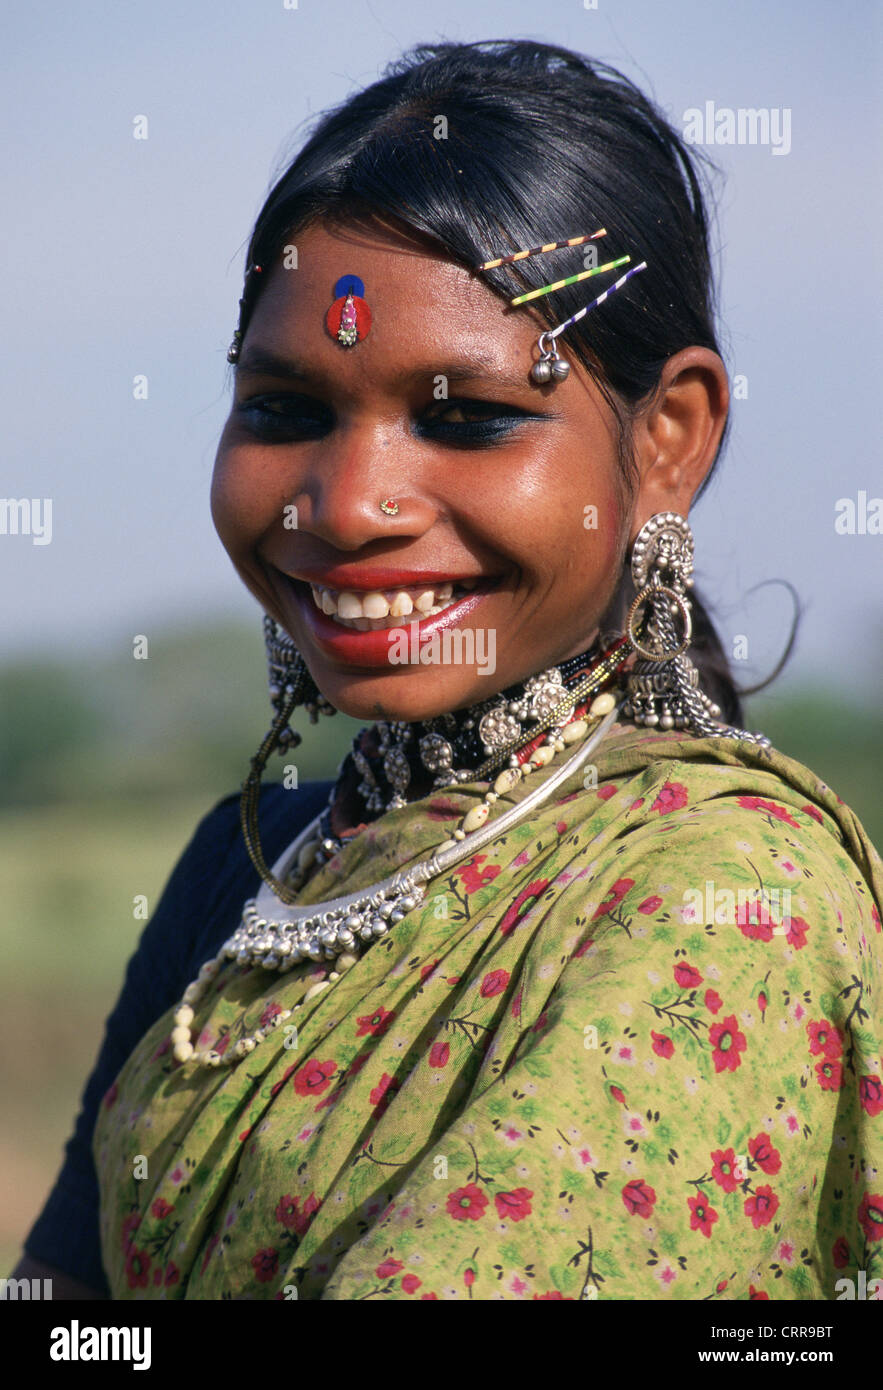 Adivasi Stock Photos & Adivasi Stock Images - Alamy